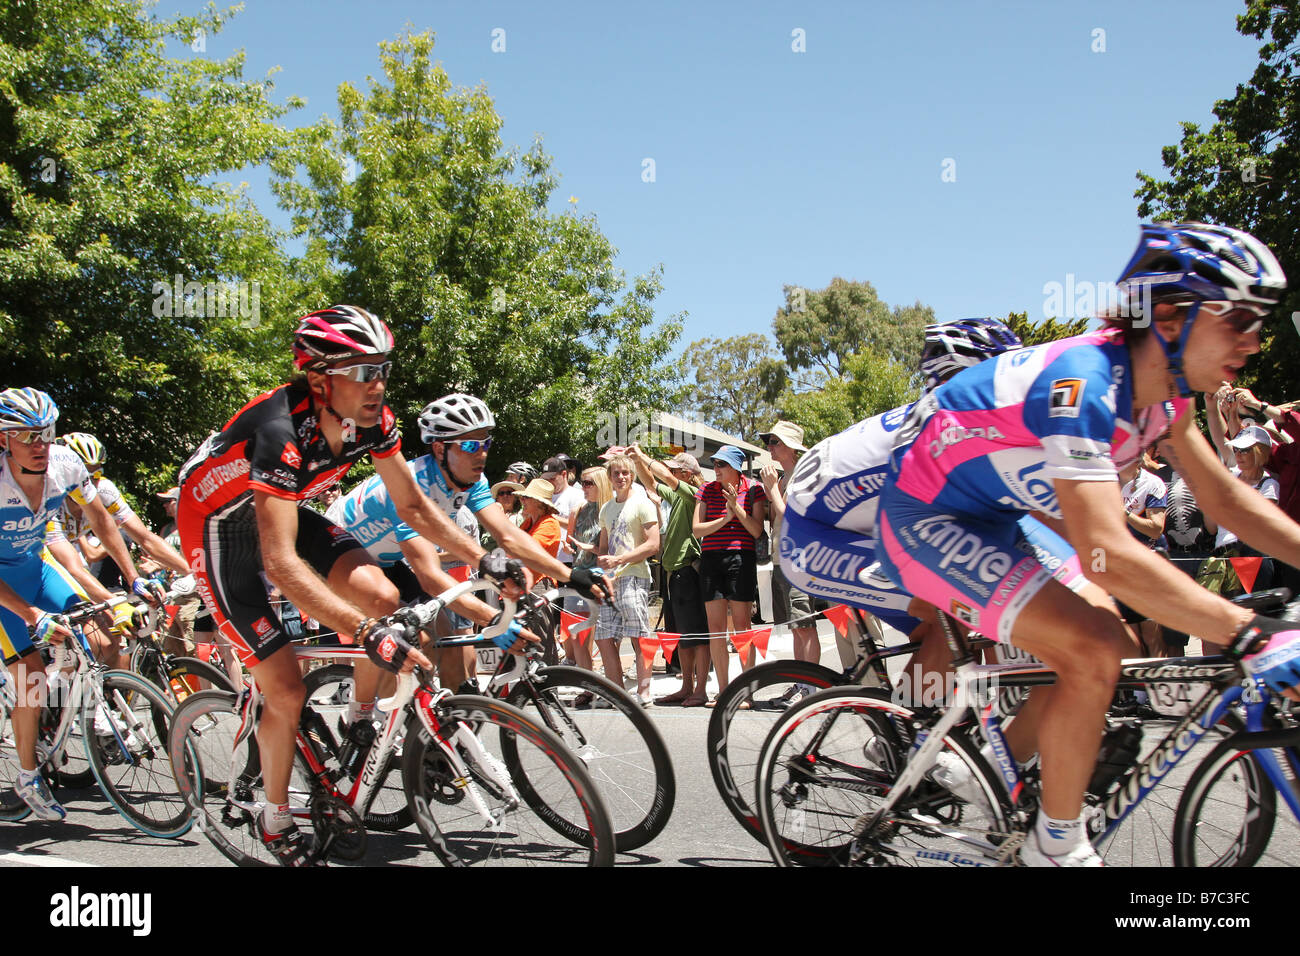 Riders competing during Stage 2 of the Tour Down Under in Adelaide Australia on January 20 2009 - Stock Image